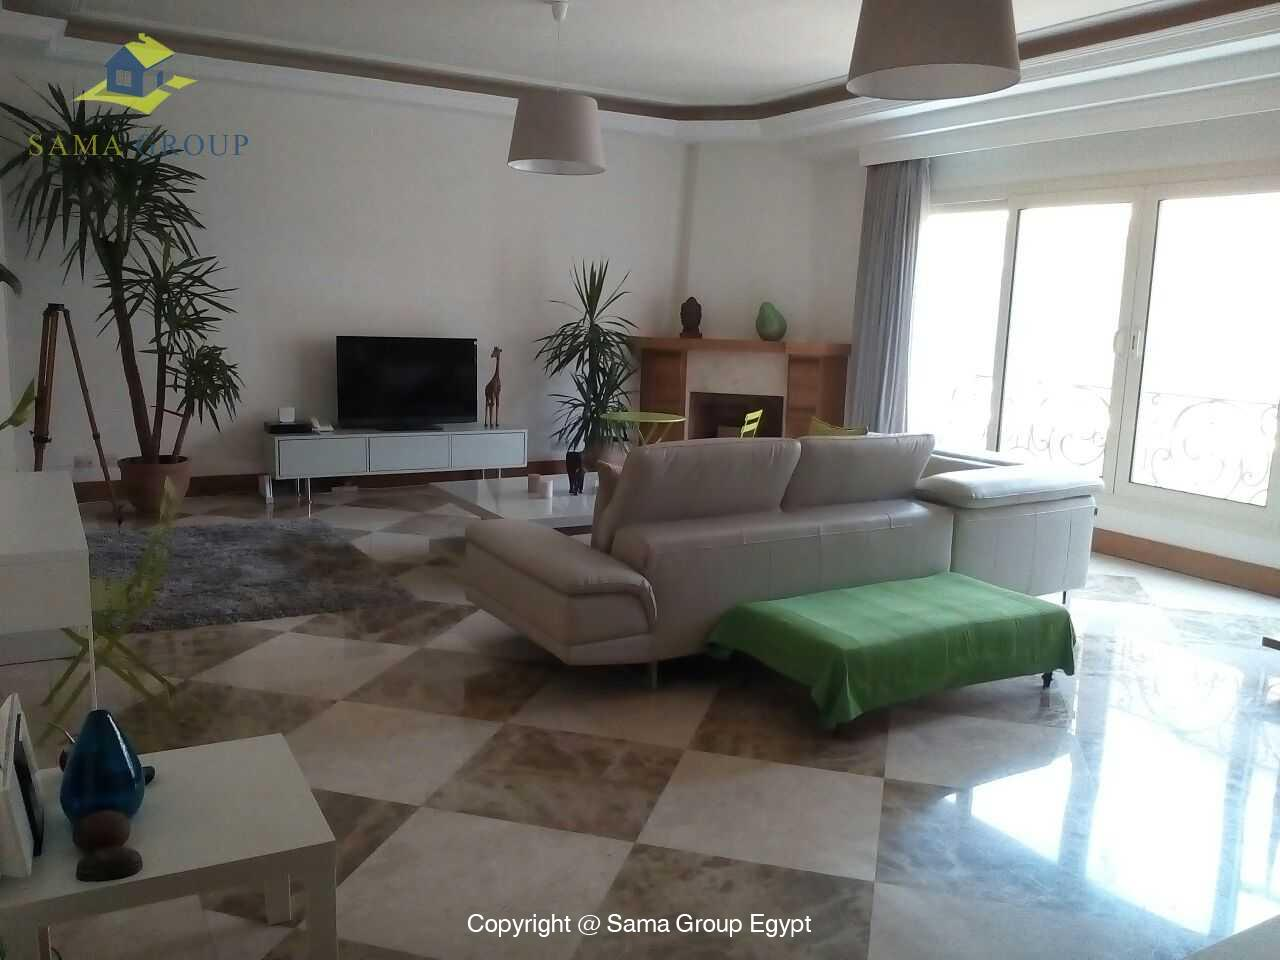 Penthouse Duplex For Sale In Maadi Sarayat